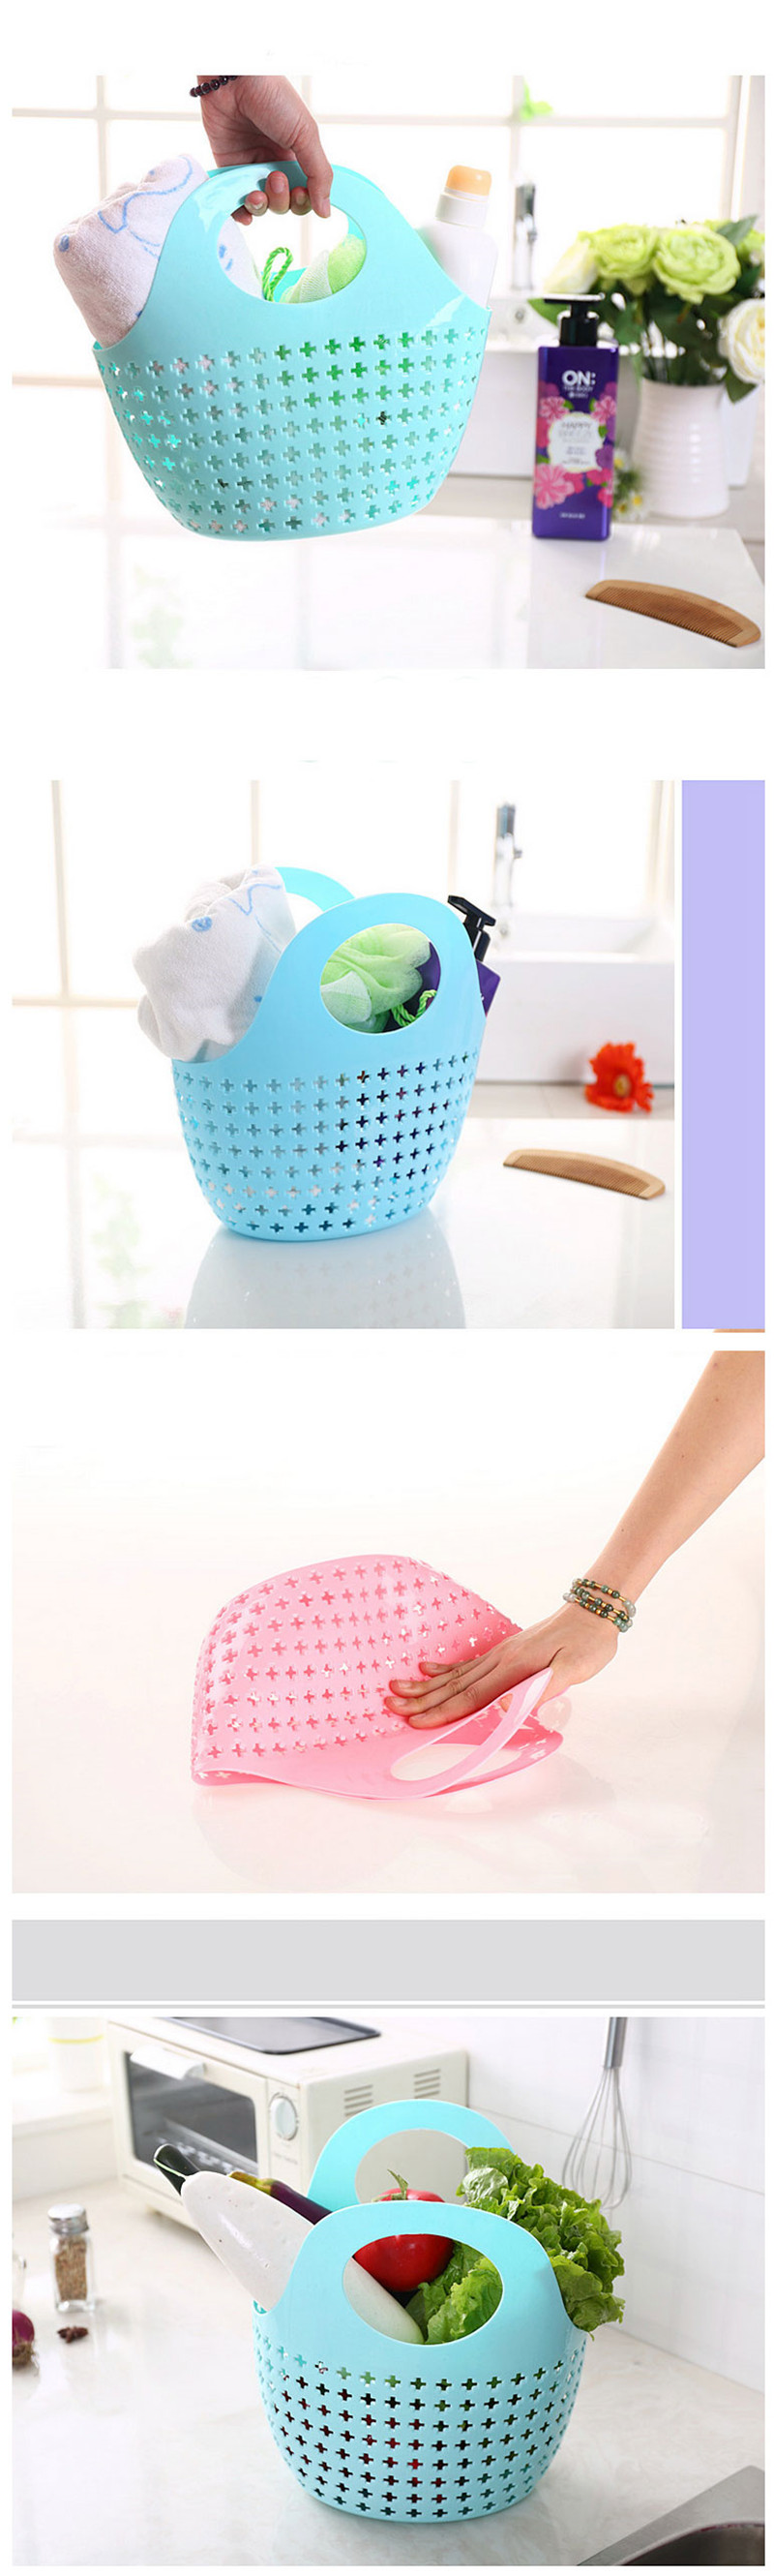 multipurpose storage baskets 16 new kitchen bathroom plastic basket fashion 6 color organizer cesto ropa sucia 4